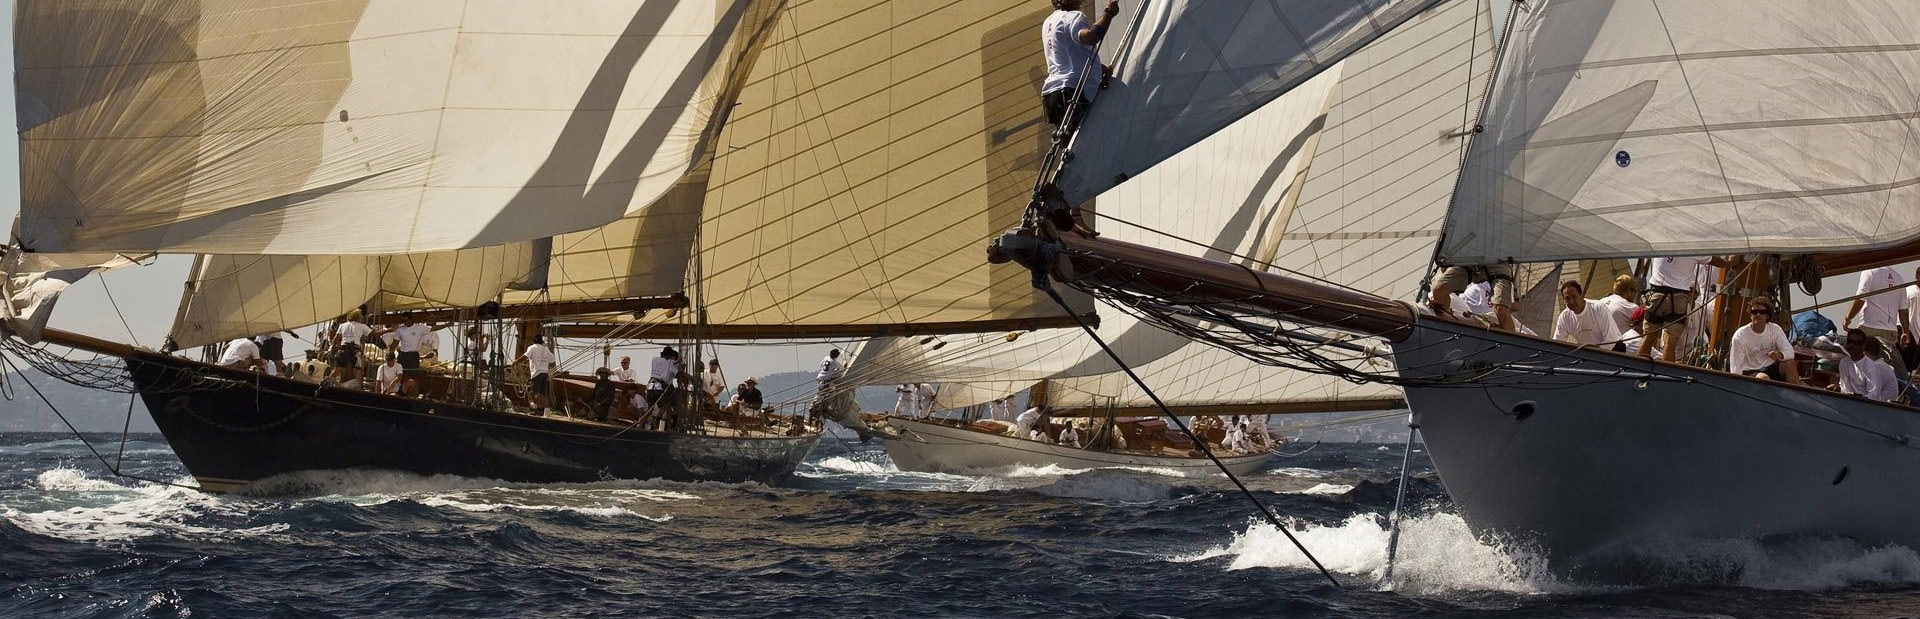 Yacht regatta with Sailing yacht Elena